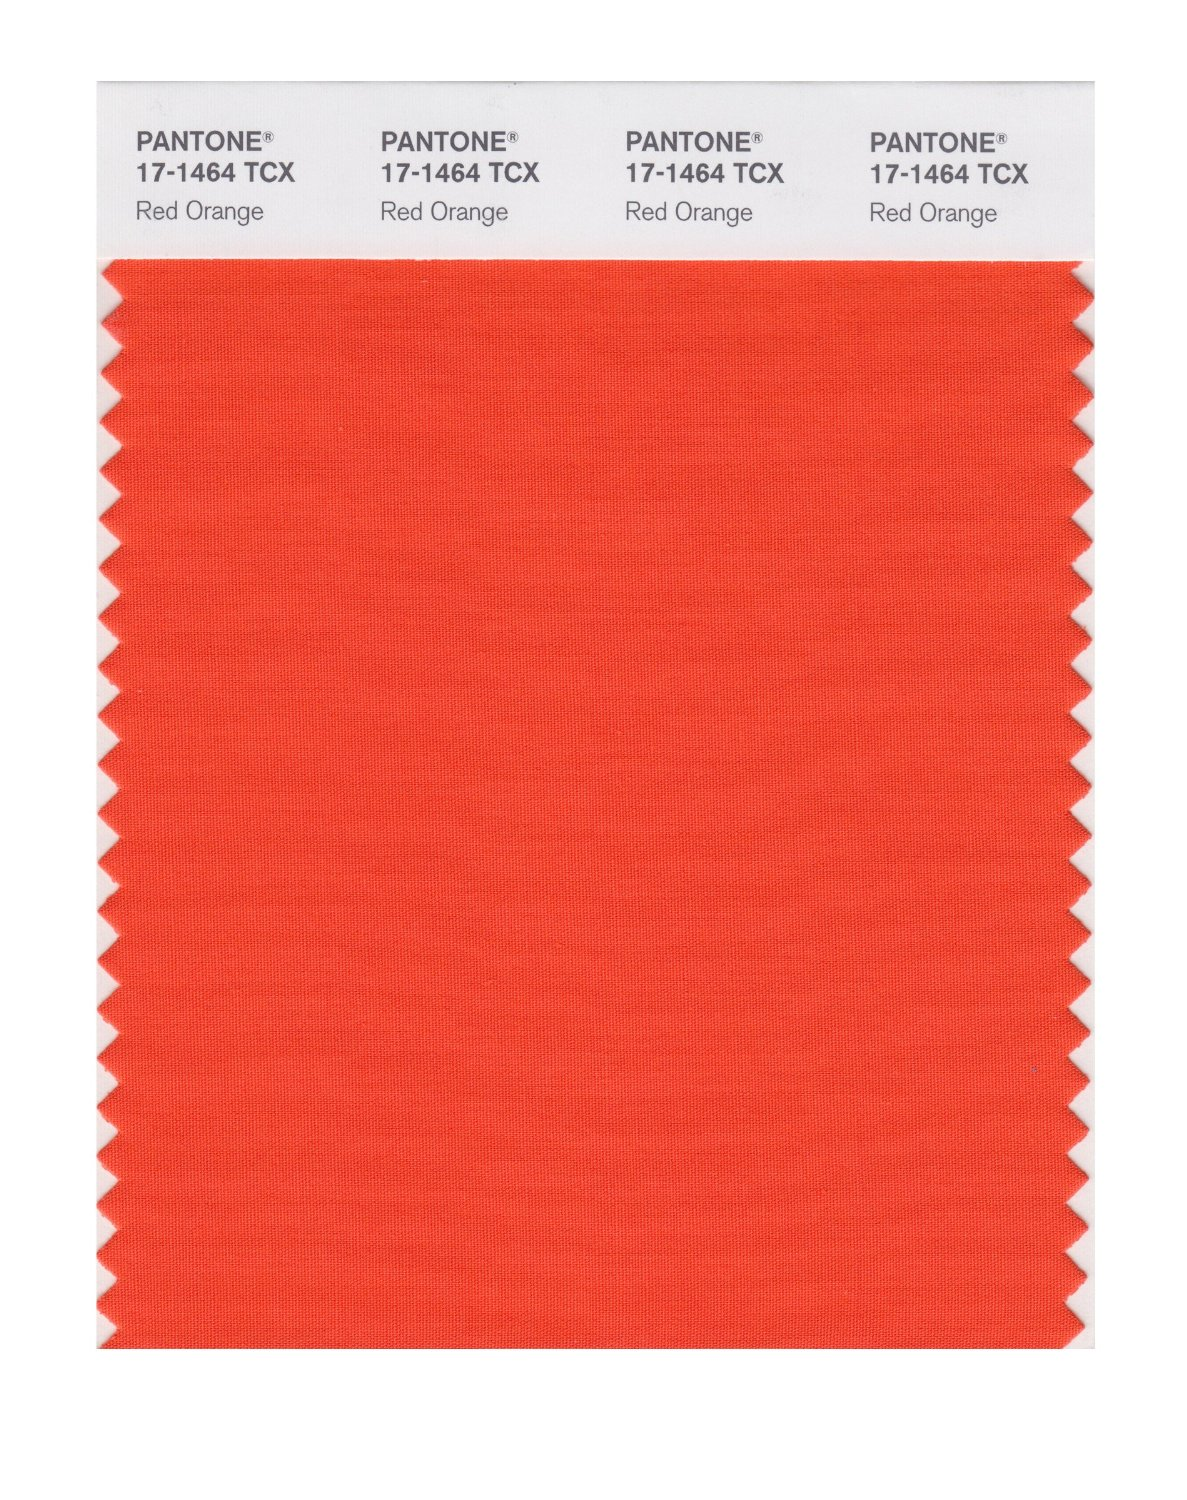 Pantone Smart Swatch 17-1464 Red Orange